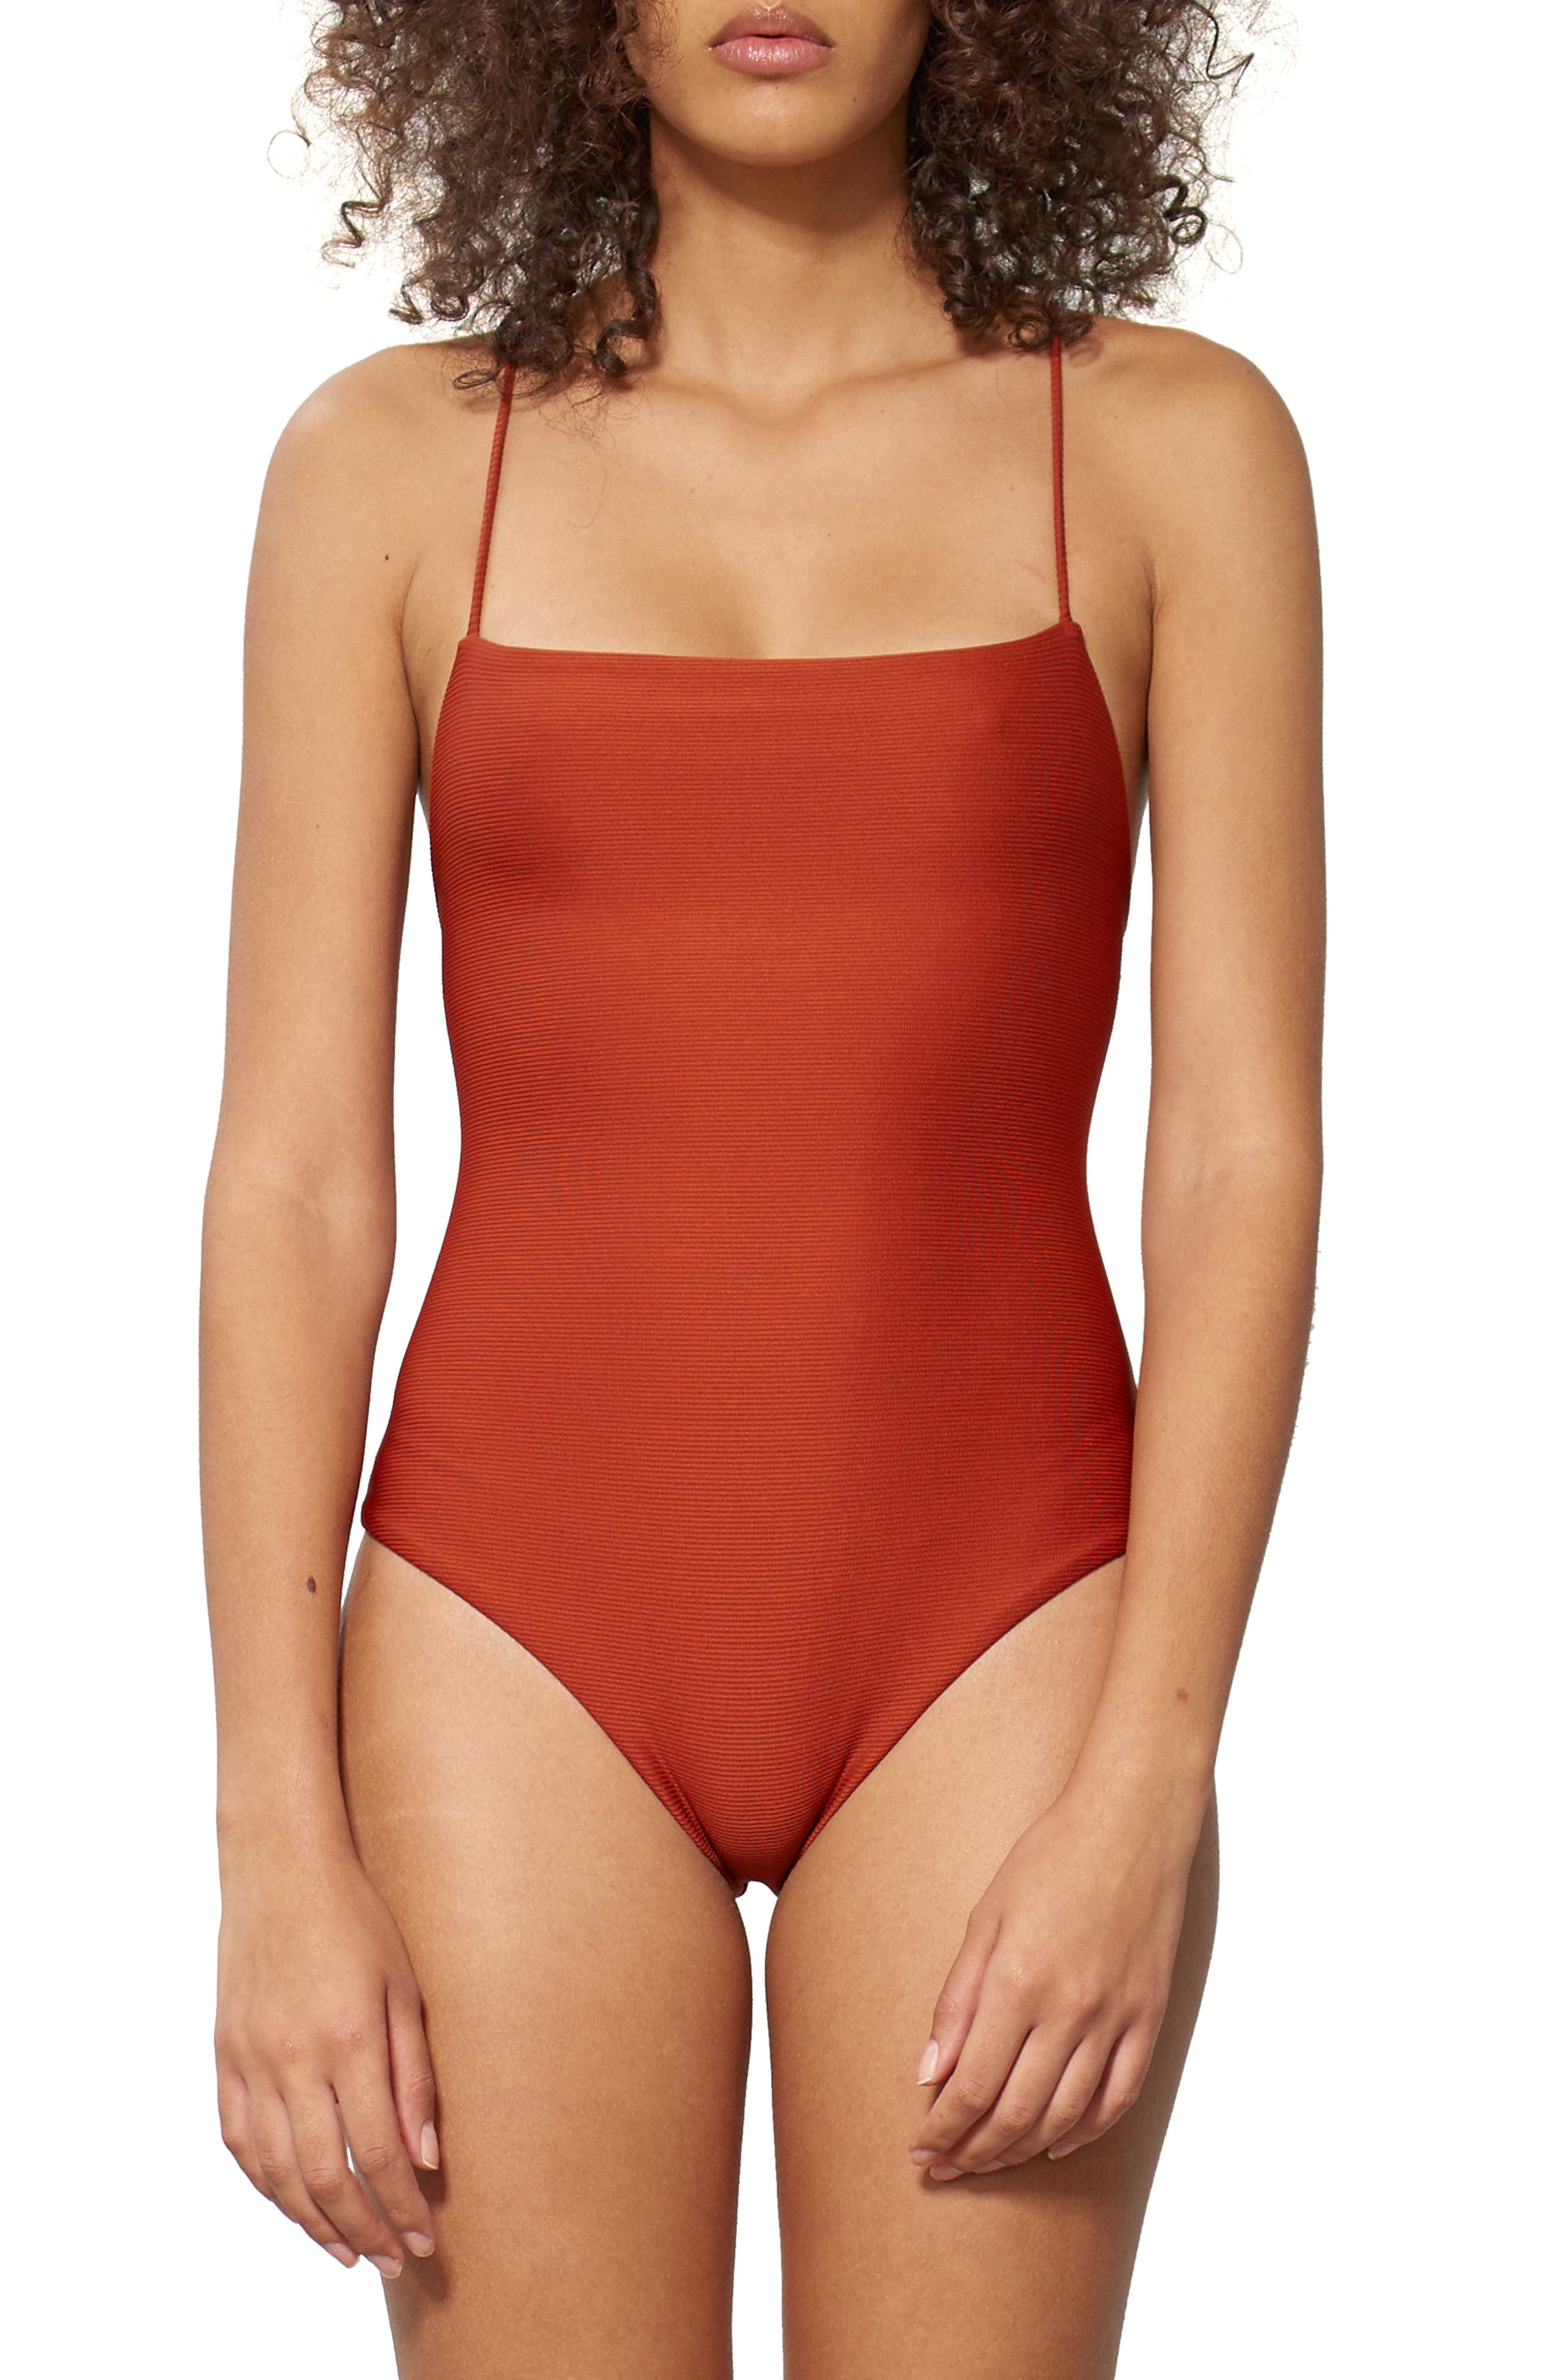 Olympia One-Piece Swimsuit,                         Main,                         color, 210